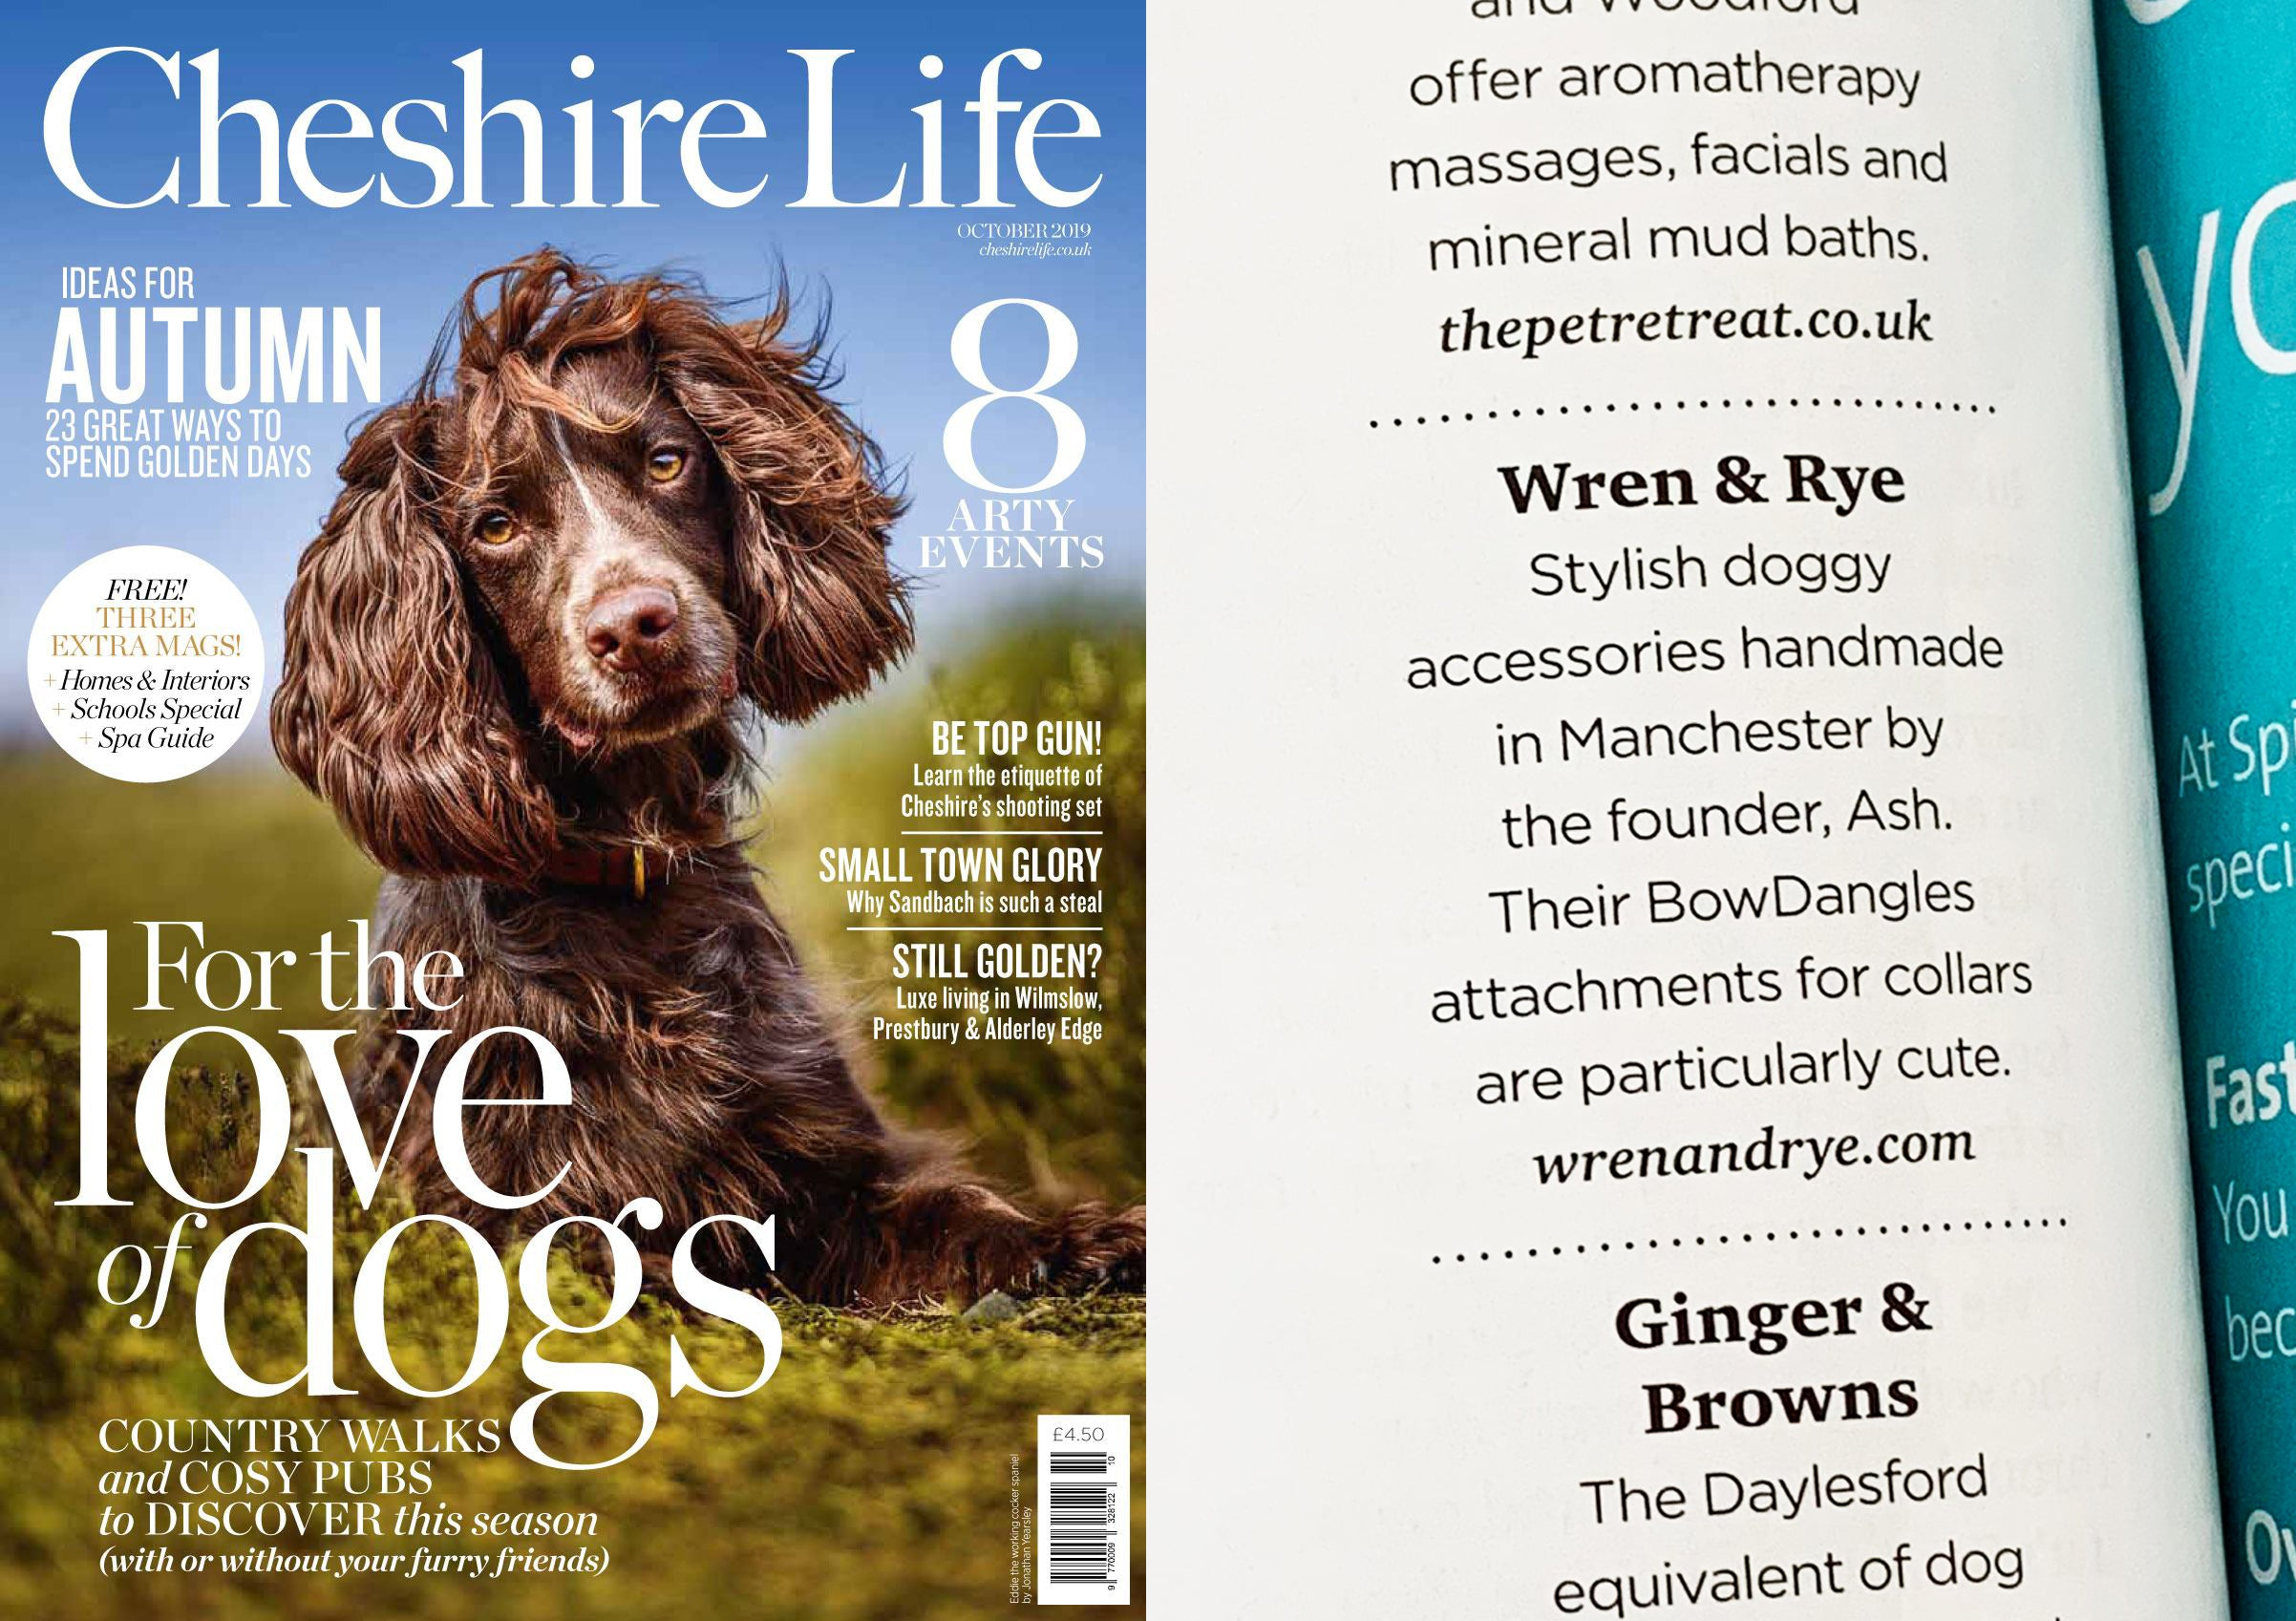 Wren & Rye - Press - Cheshire Life Magazine October Issue